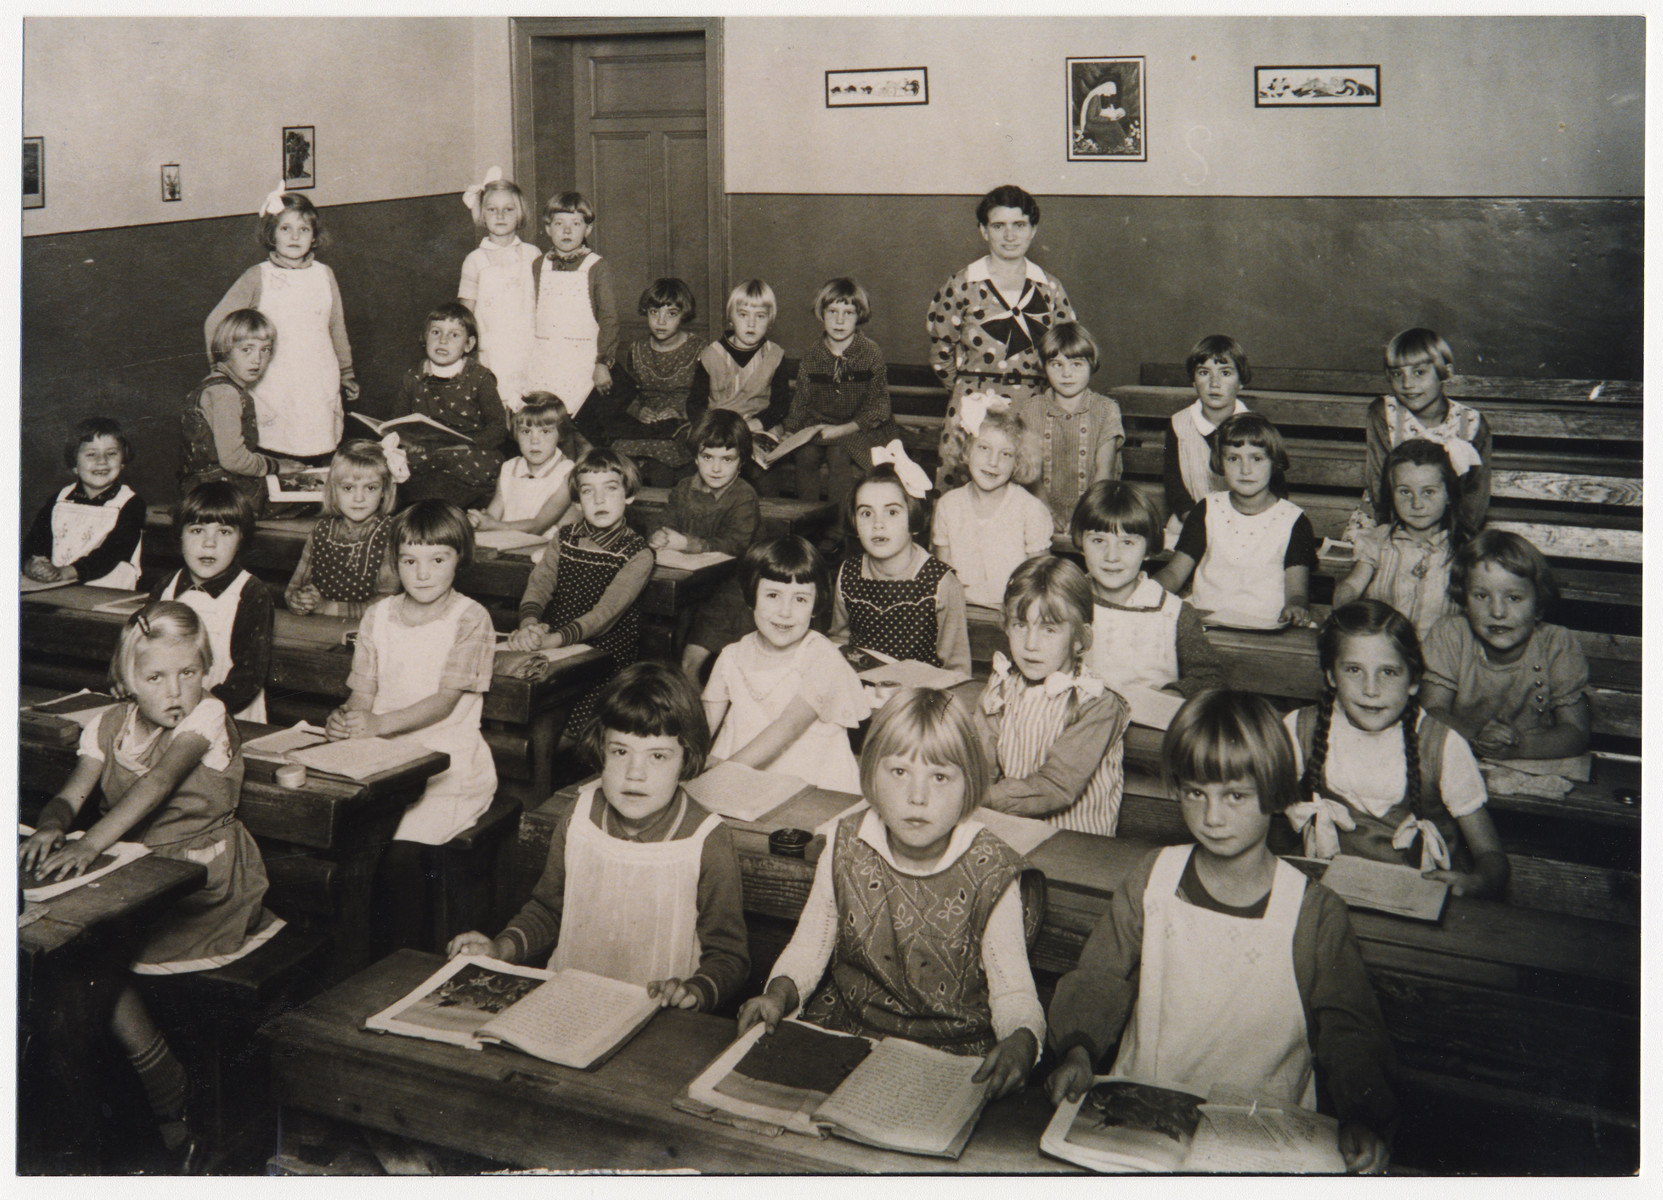 Group portrait of elementary school students seated at their desks.  Among those pictured (front row, second from the left) is .Ilse Kohnn, a cousin of the donor (Kurt Pauly).